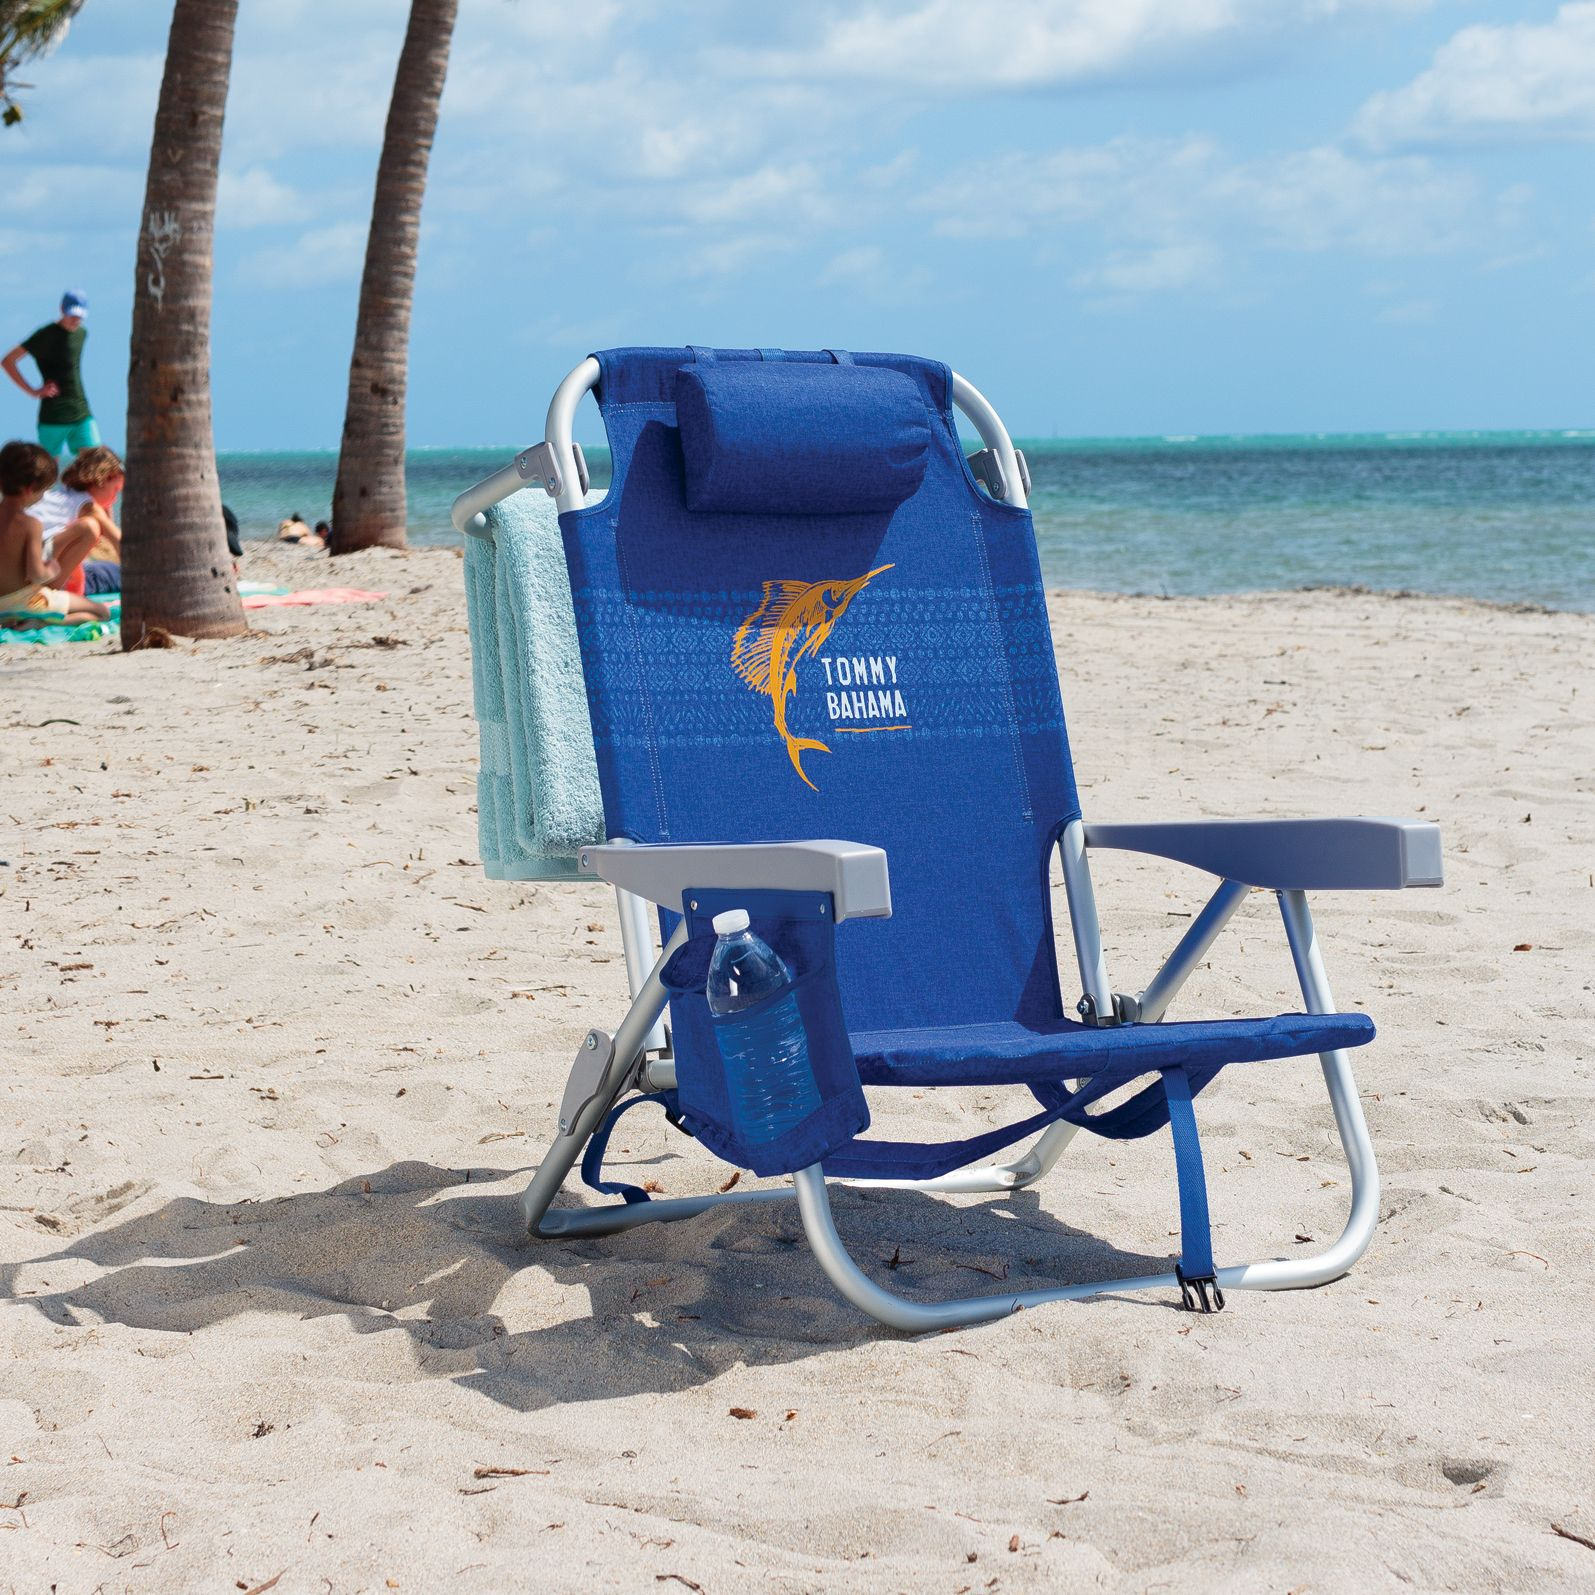 bb33fc55c5 With an insulated pouch, cell phone holder, towel bar, adjustable pillow  and more, you're guaranteed to always have the best seat in paradise!